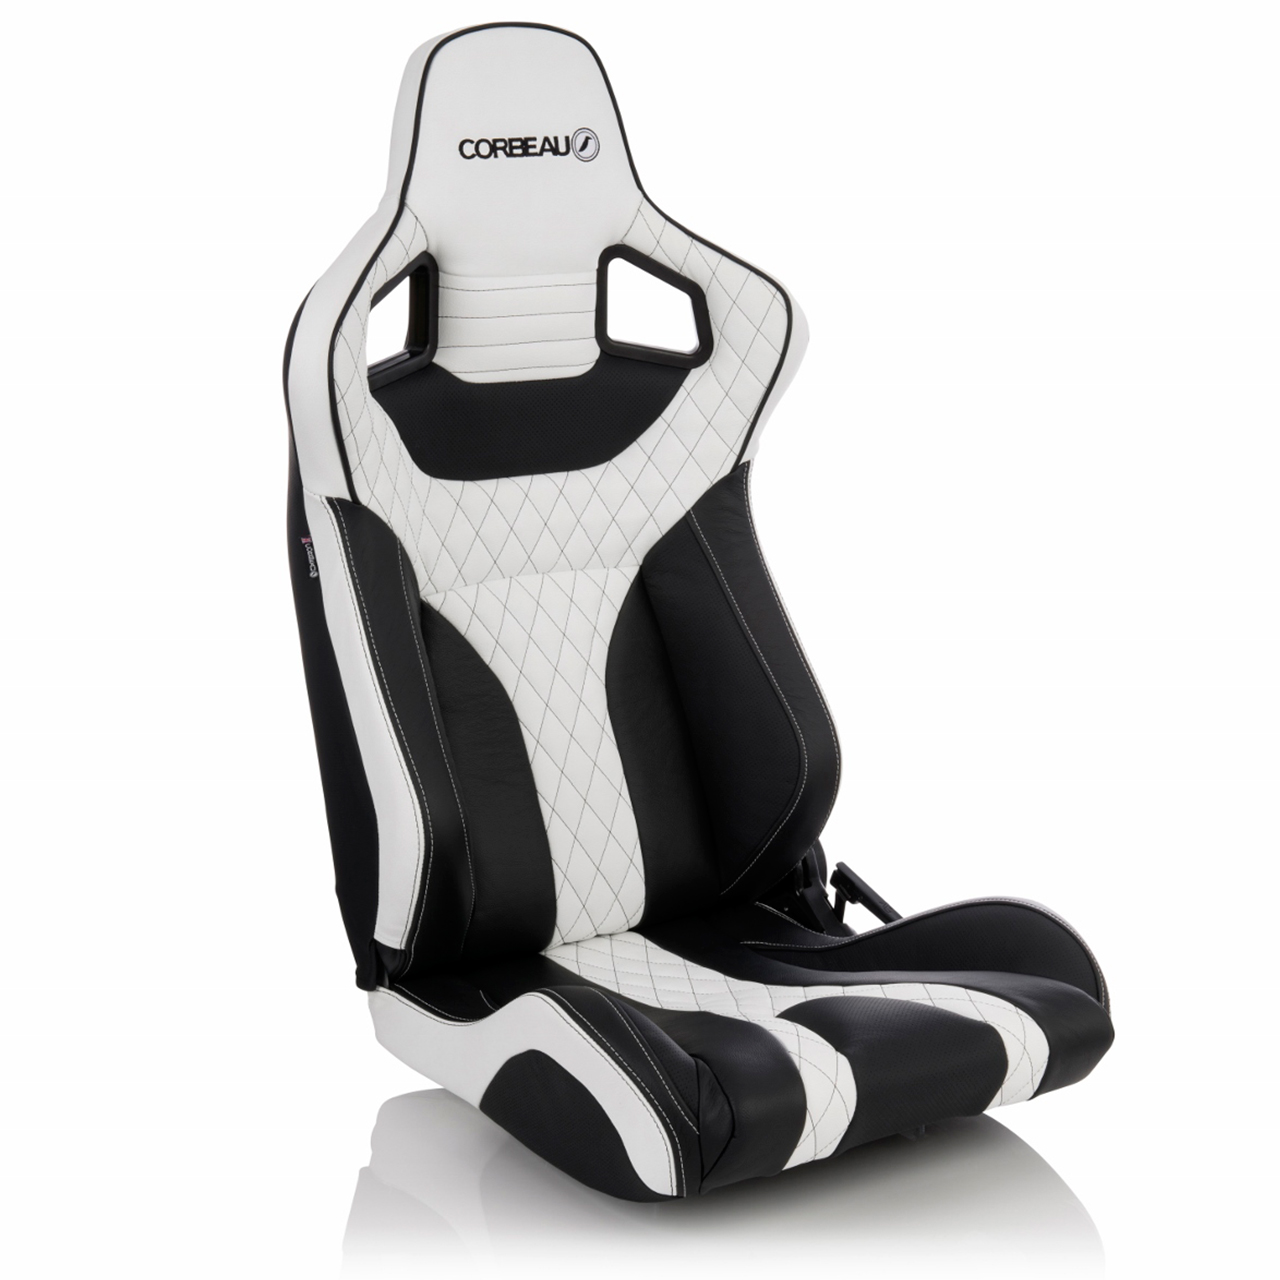 Corbeau Sportline RRS Reclining Race Seat with Black/White Elite Upgrade - side view